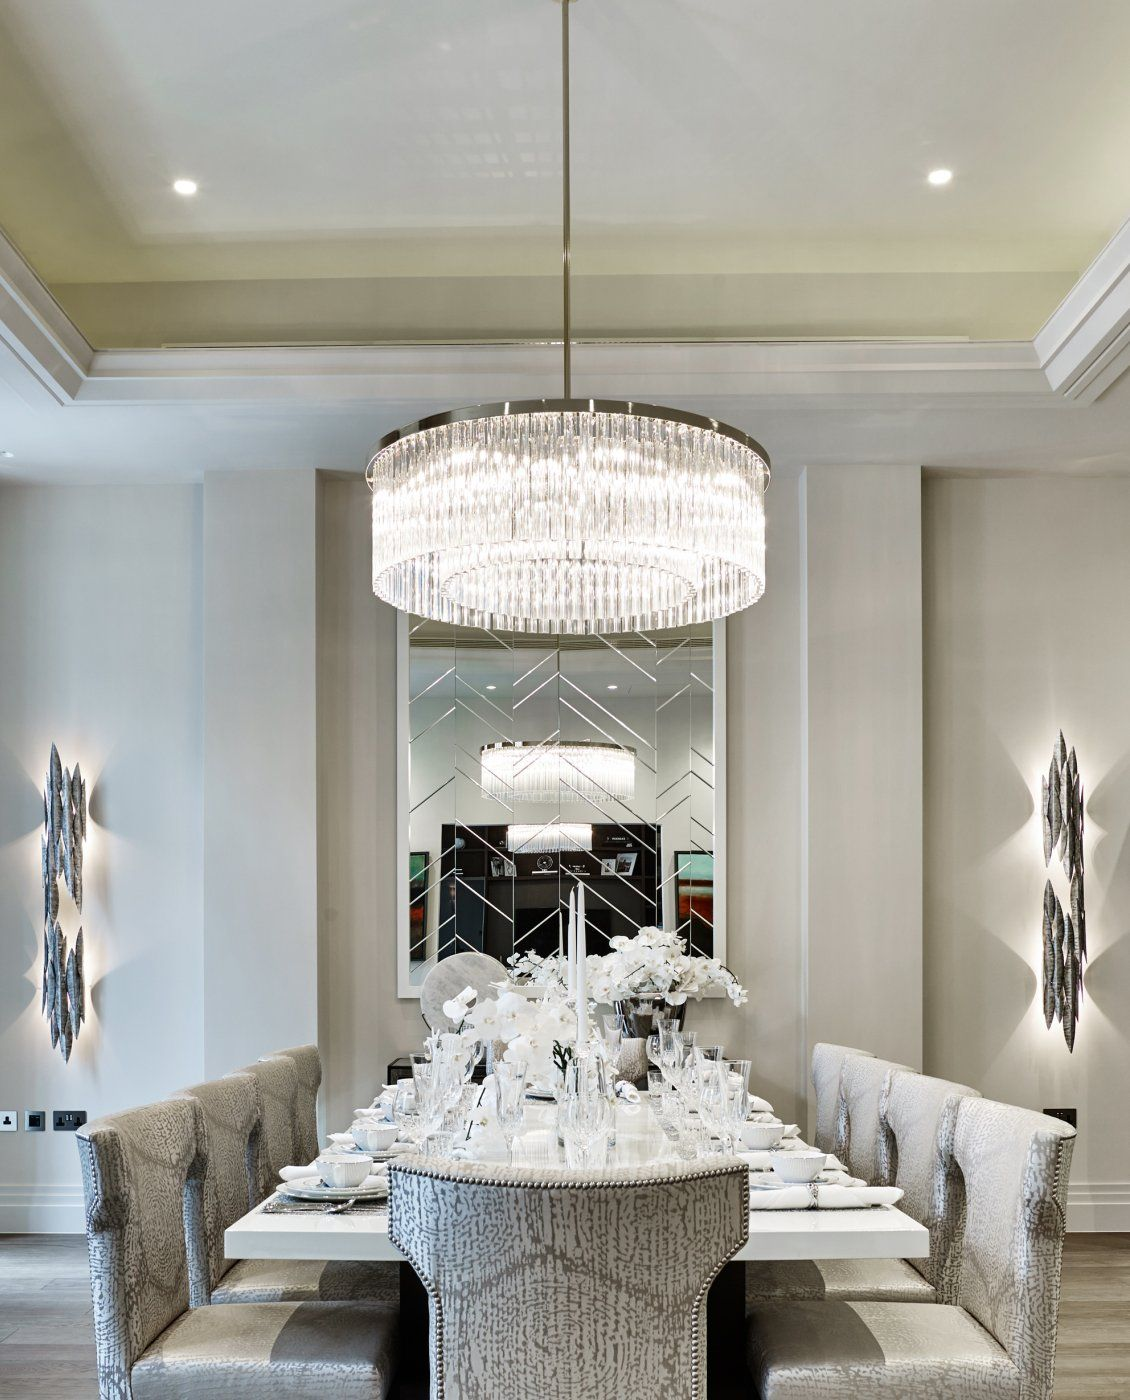 7 Luxurious Home Decor Ideas By Elicyon That You Will Want To Copy ...